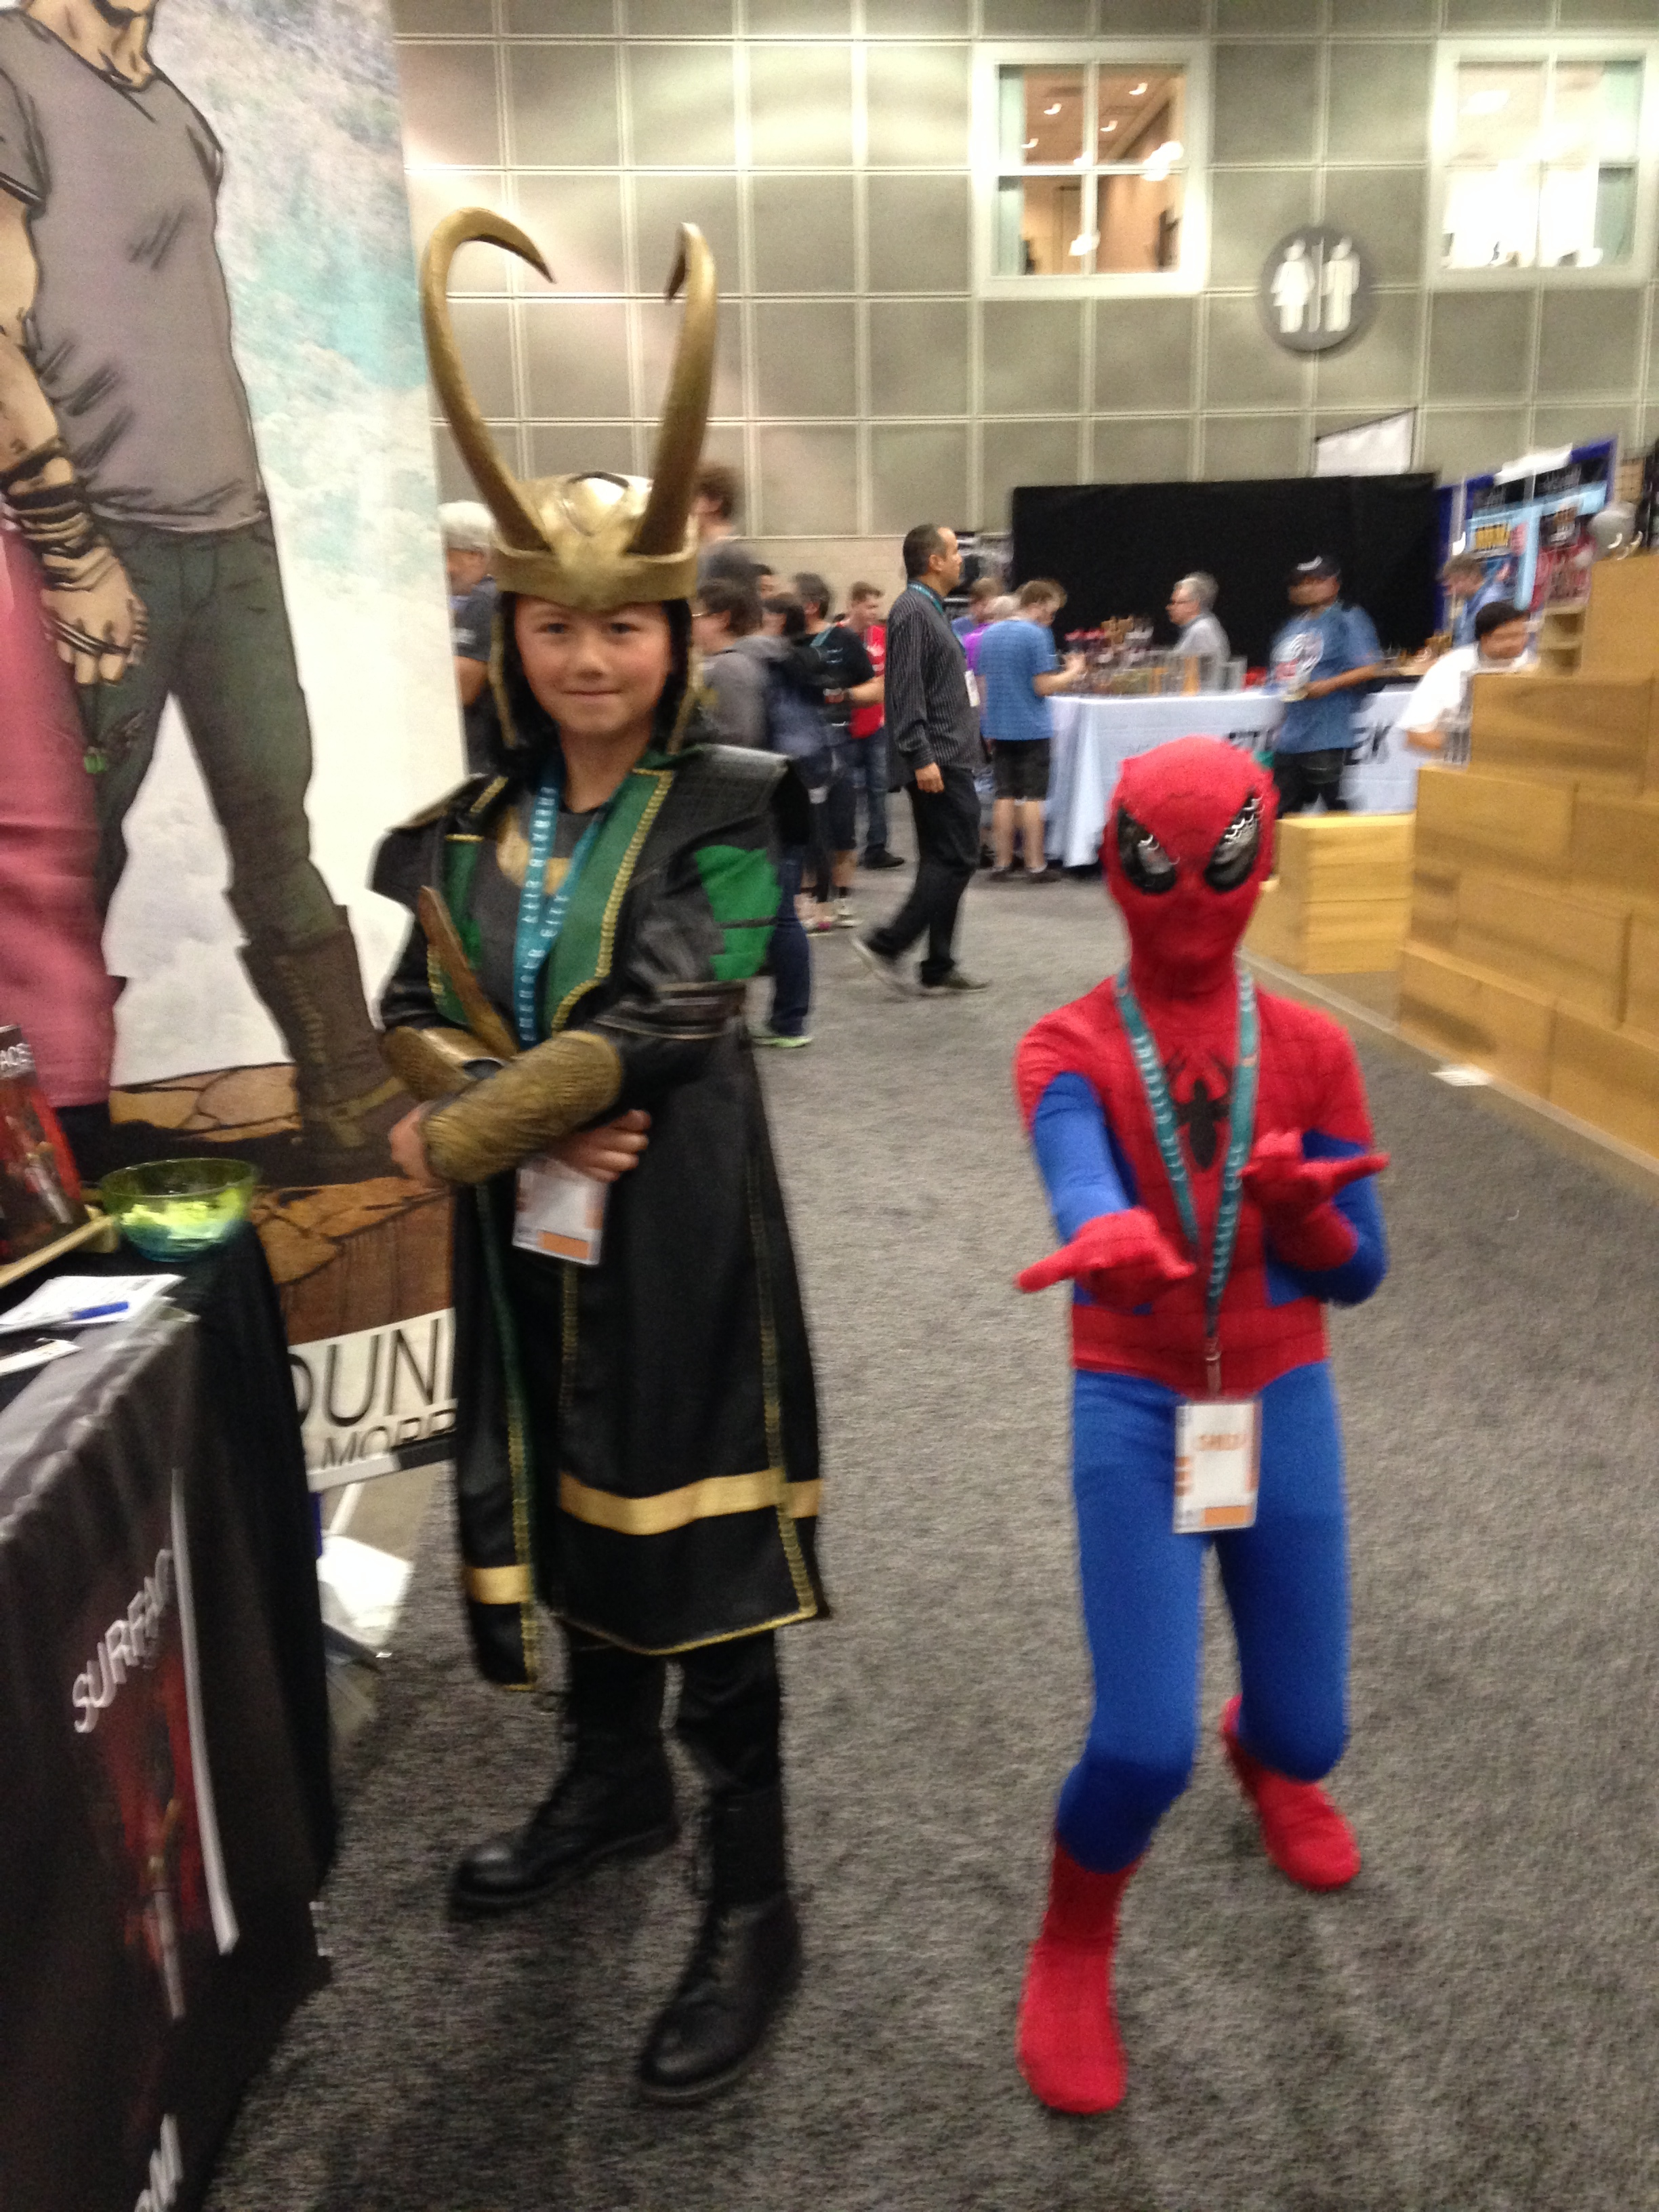 Children cosplaying Loki and Spiderman